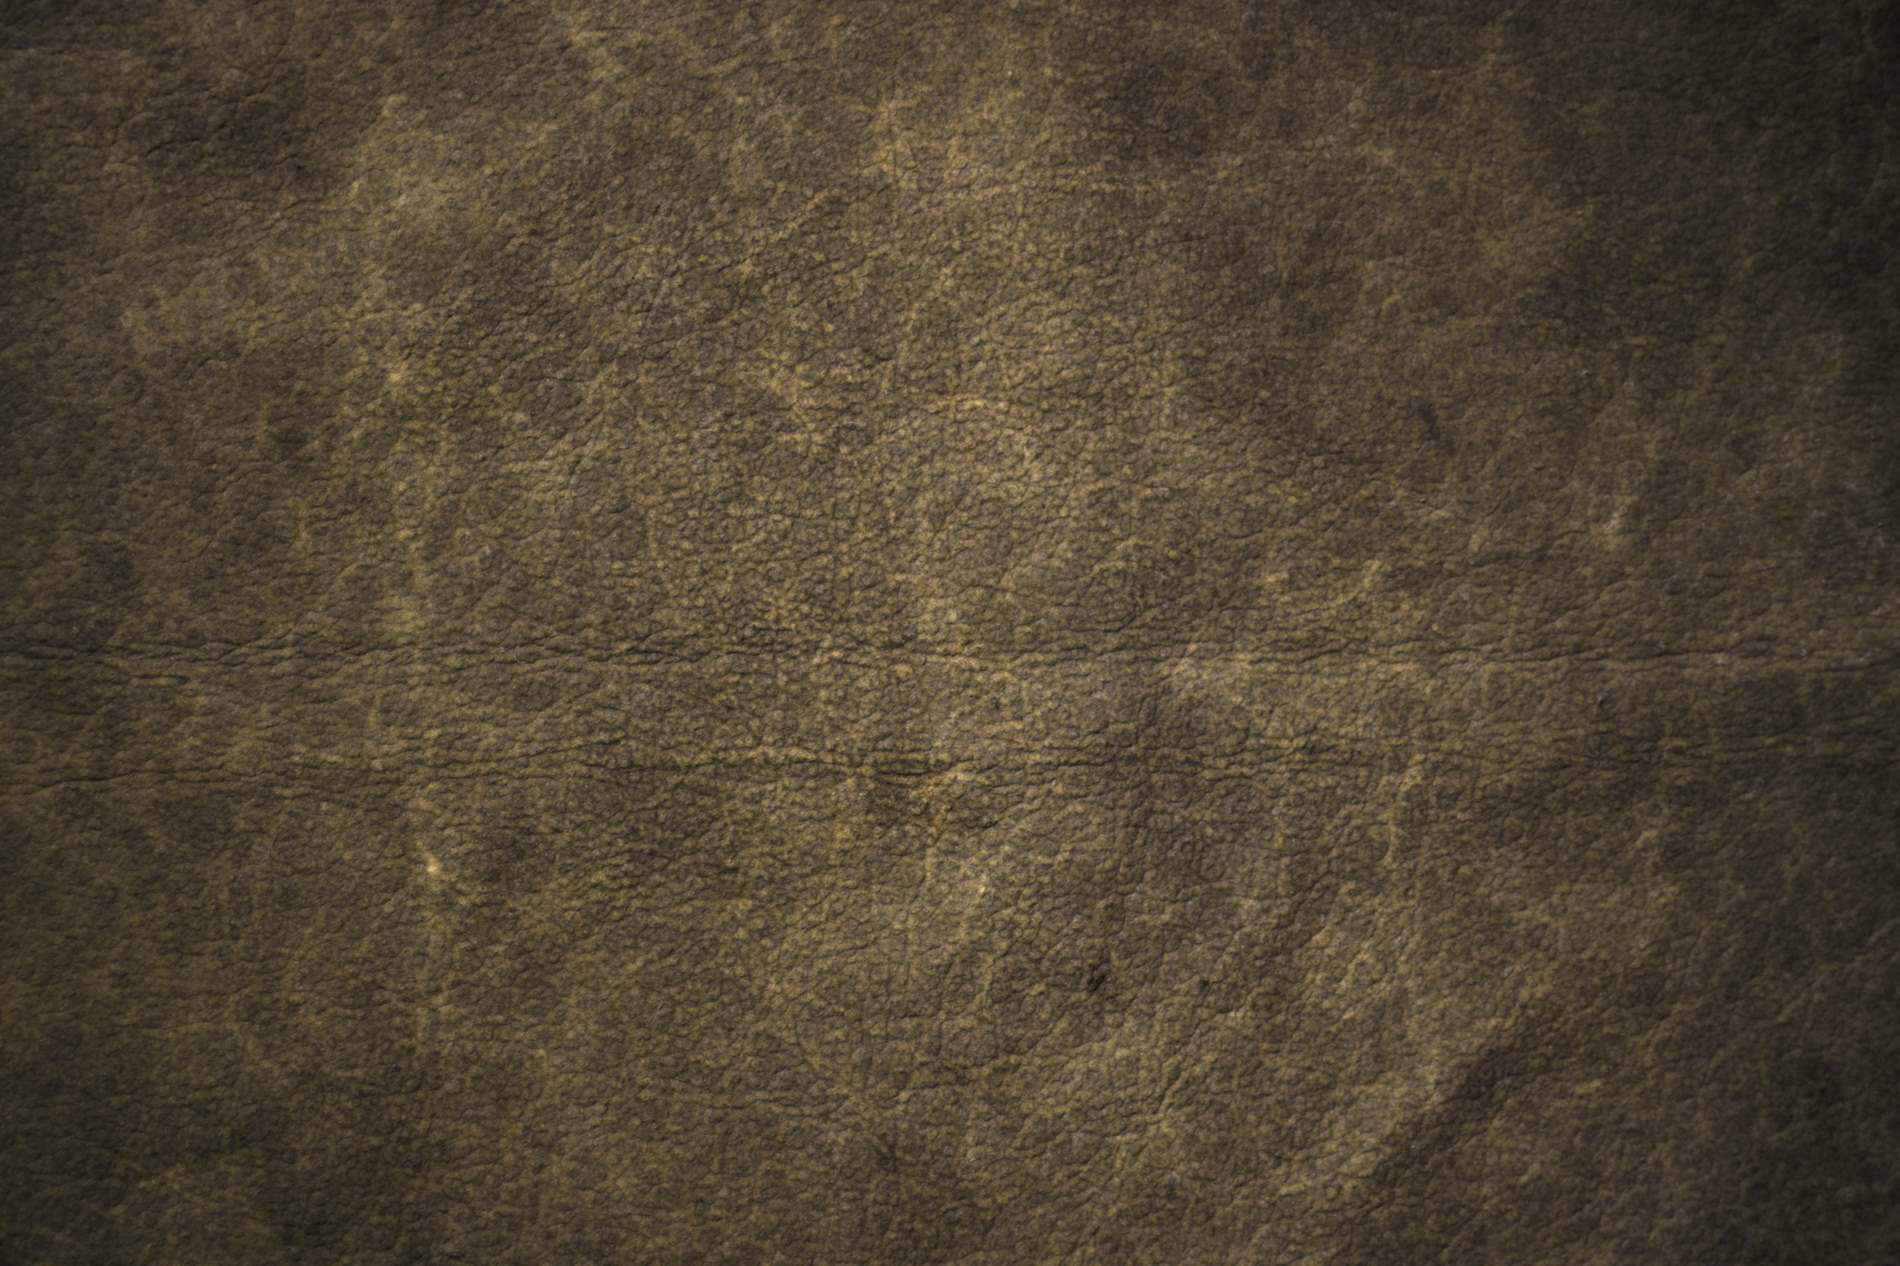 Patterned Embossed Leather Texture From Vintage Leather